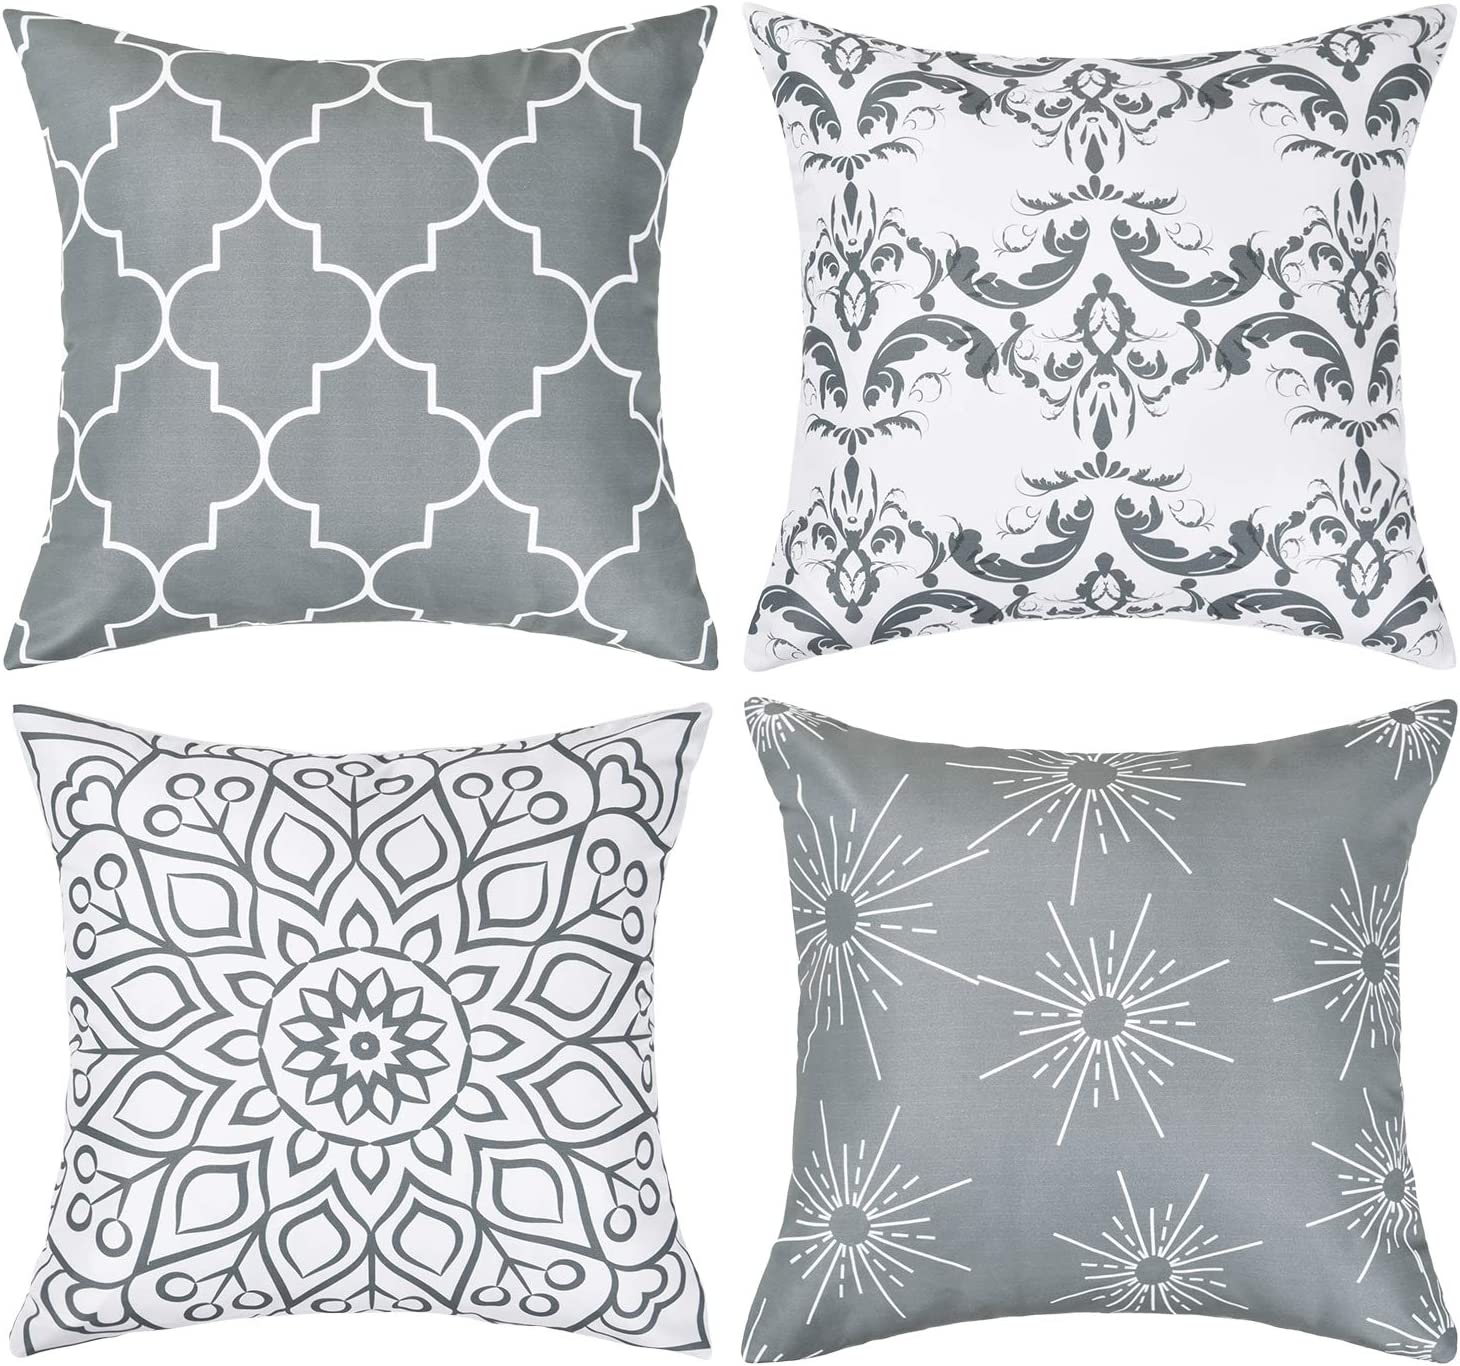 16 x 16 Inch Black BLEUM CADE Set of 4 Throw Pillow Covers Modern Decorative Throw Pillow Case Morocco Pattern Pillow Covers Cushion Case for Room Bedroom Room Sofa Chair Car